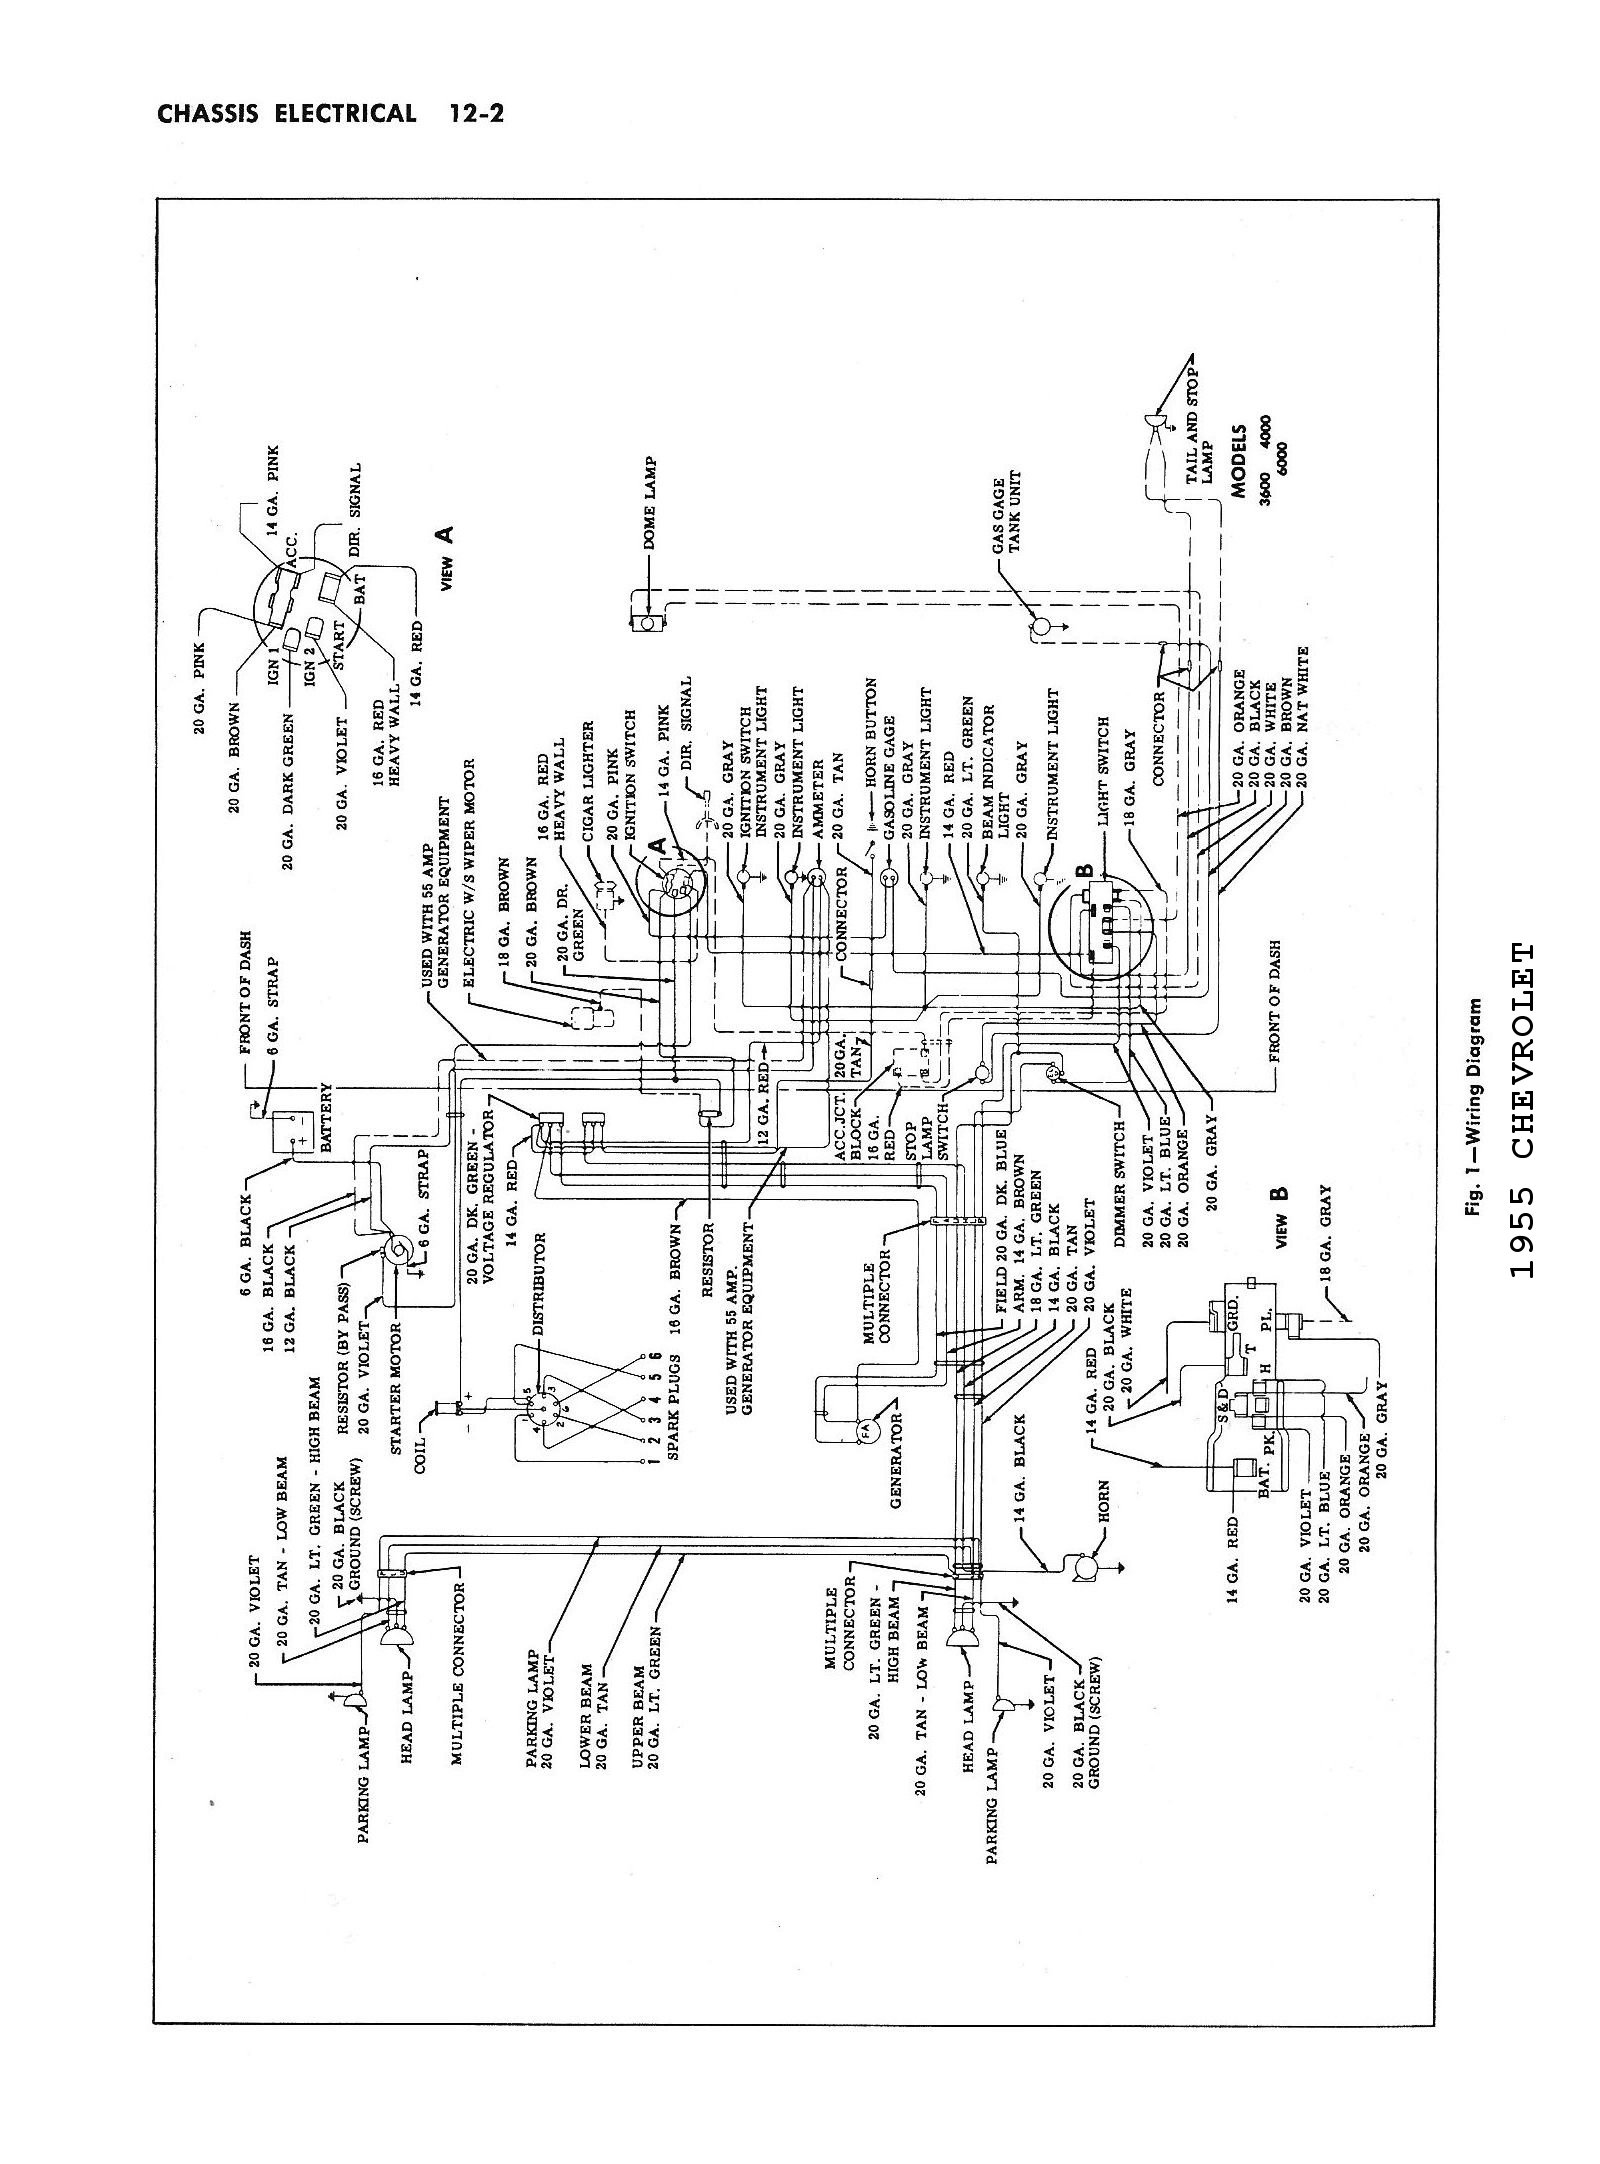 hight resolution of 1955 chevy truck wiring wiring diagram todays chevy wiring diagrams 1942 ford truck wiring 1955 chevy